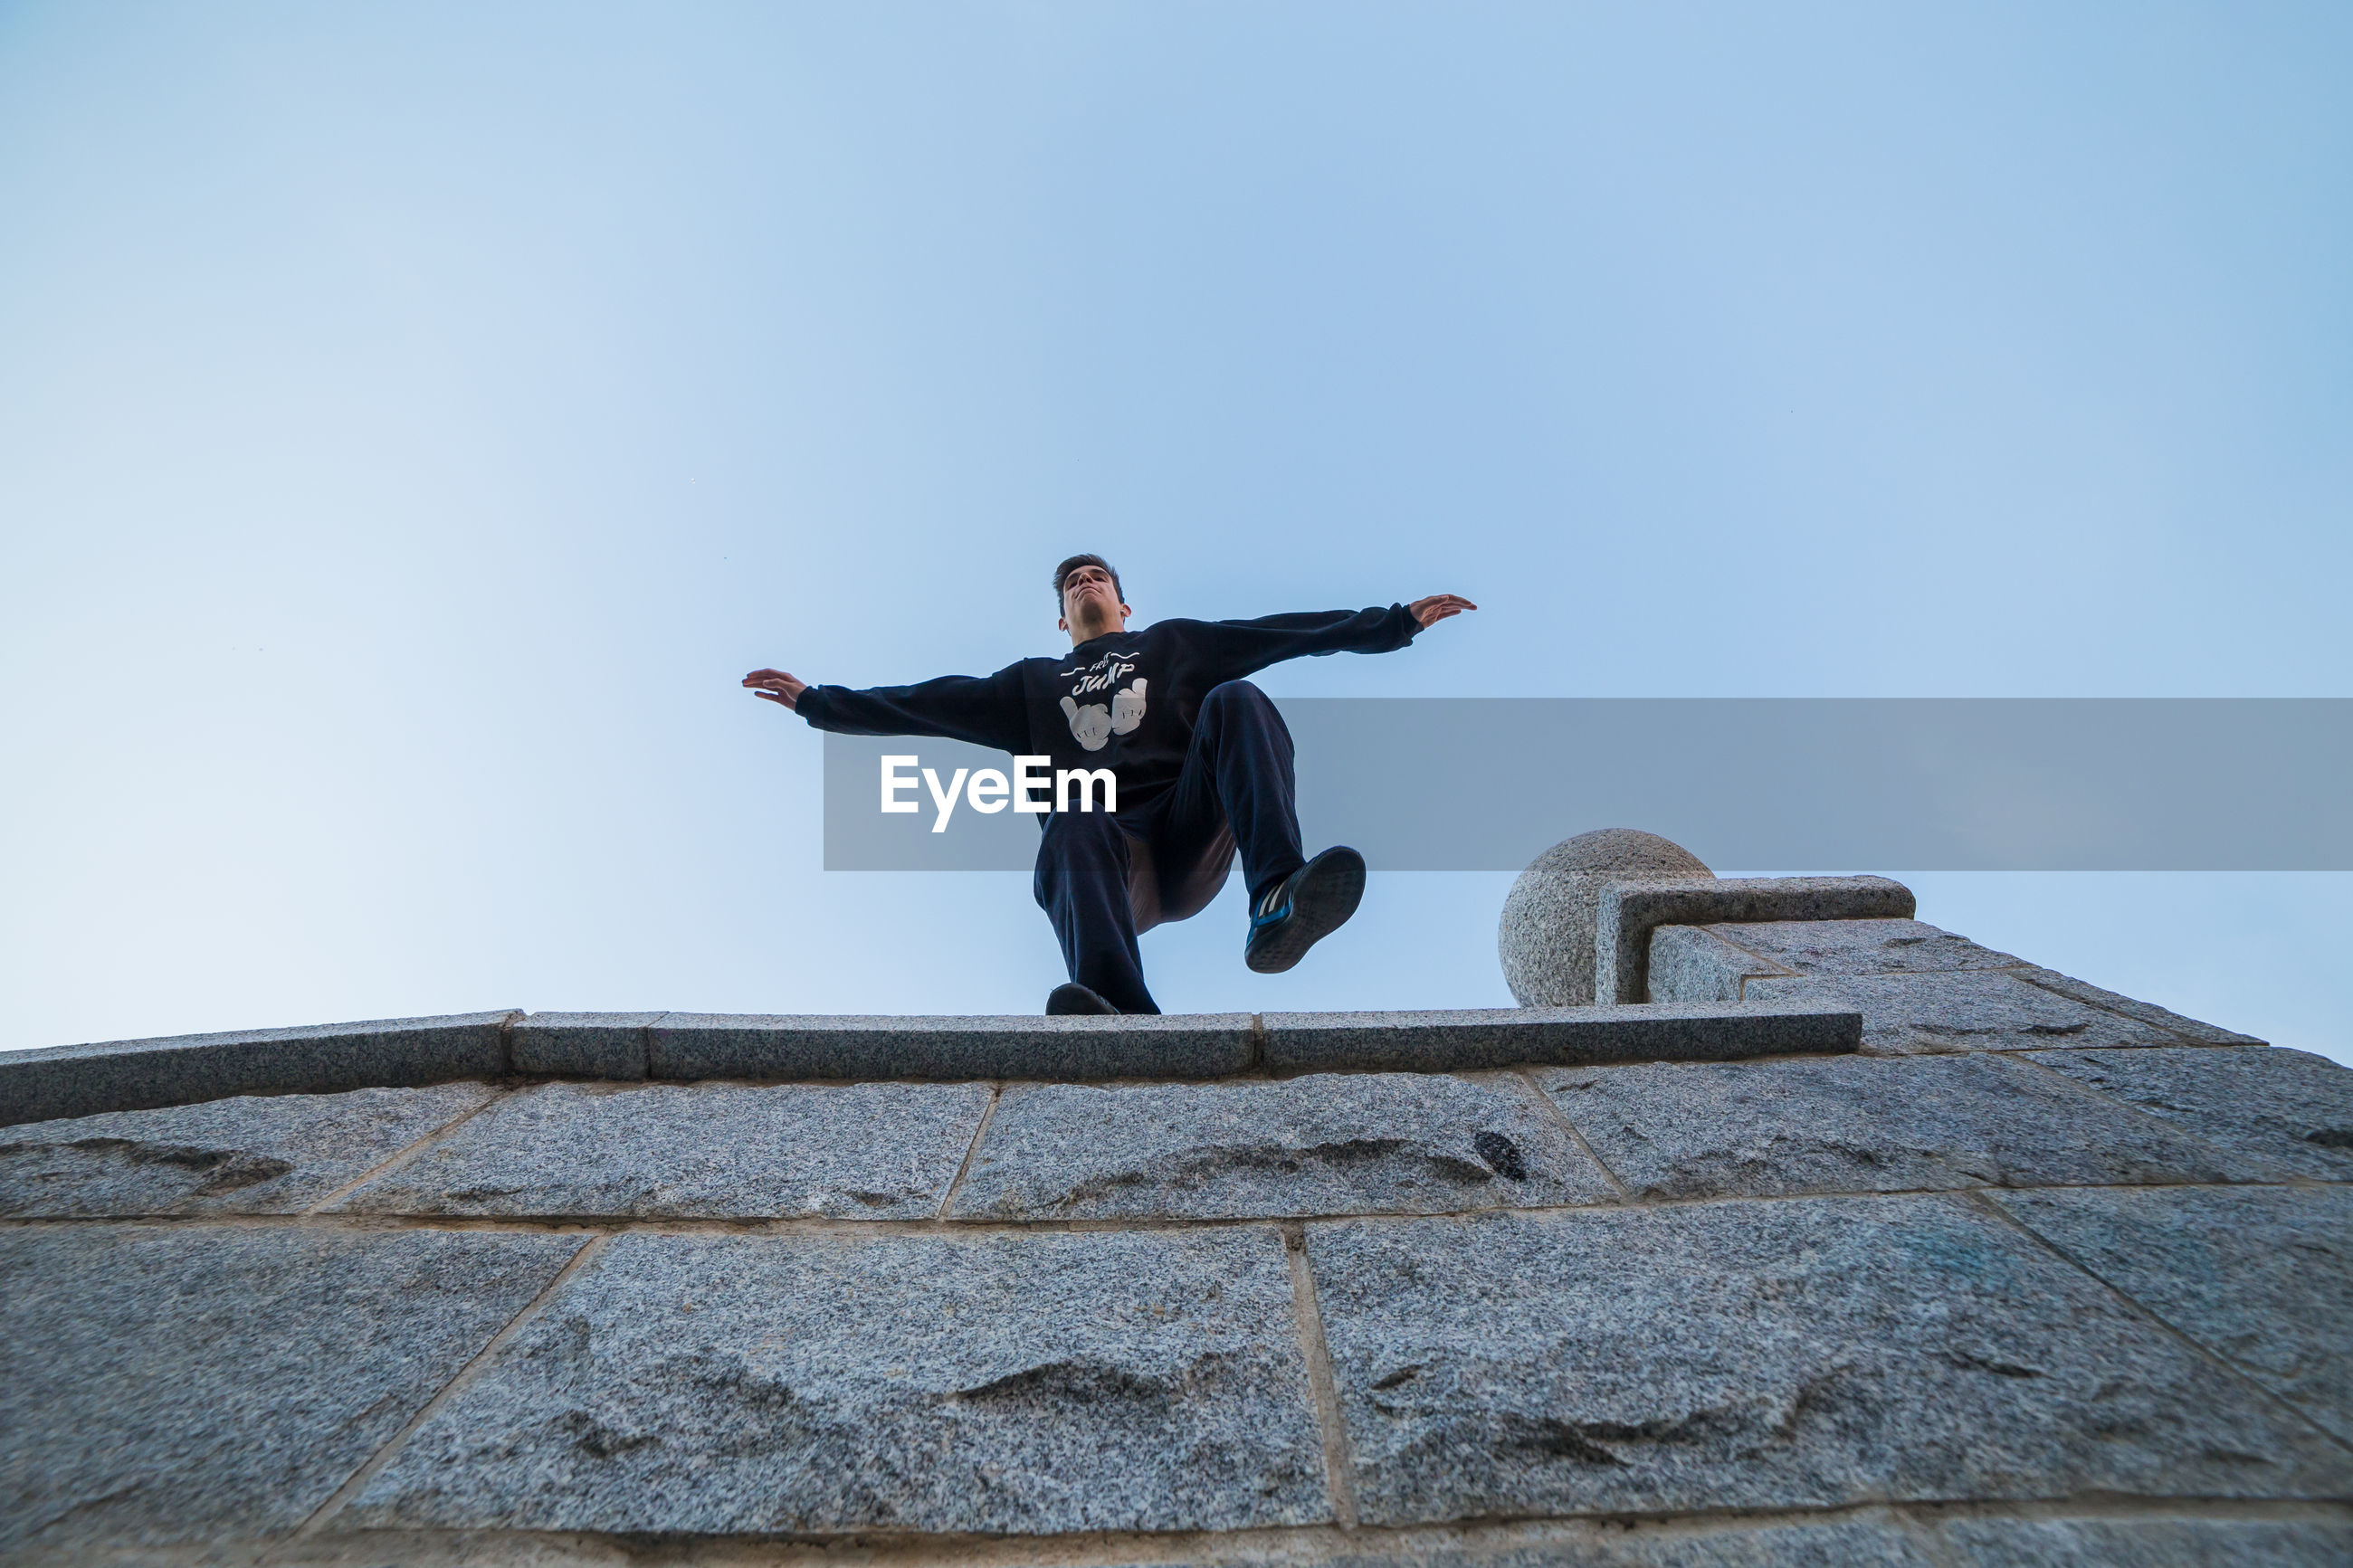 Low angle view of young man jumping from building against clear sky